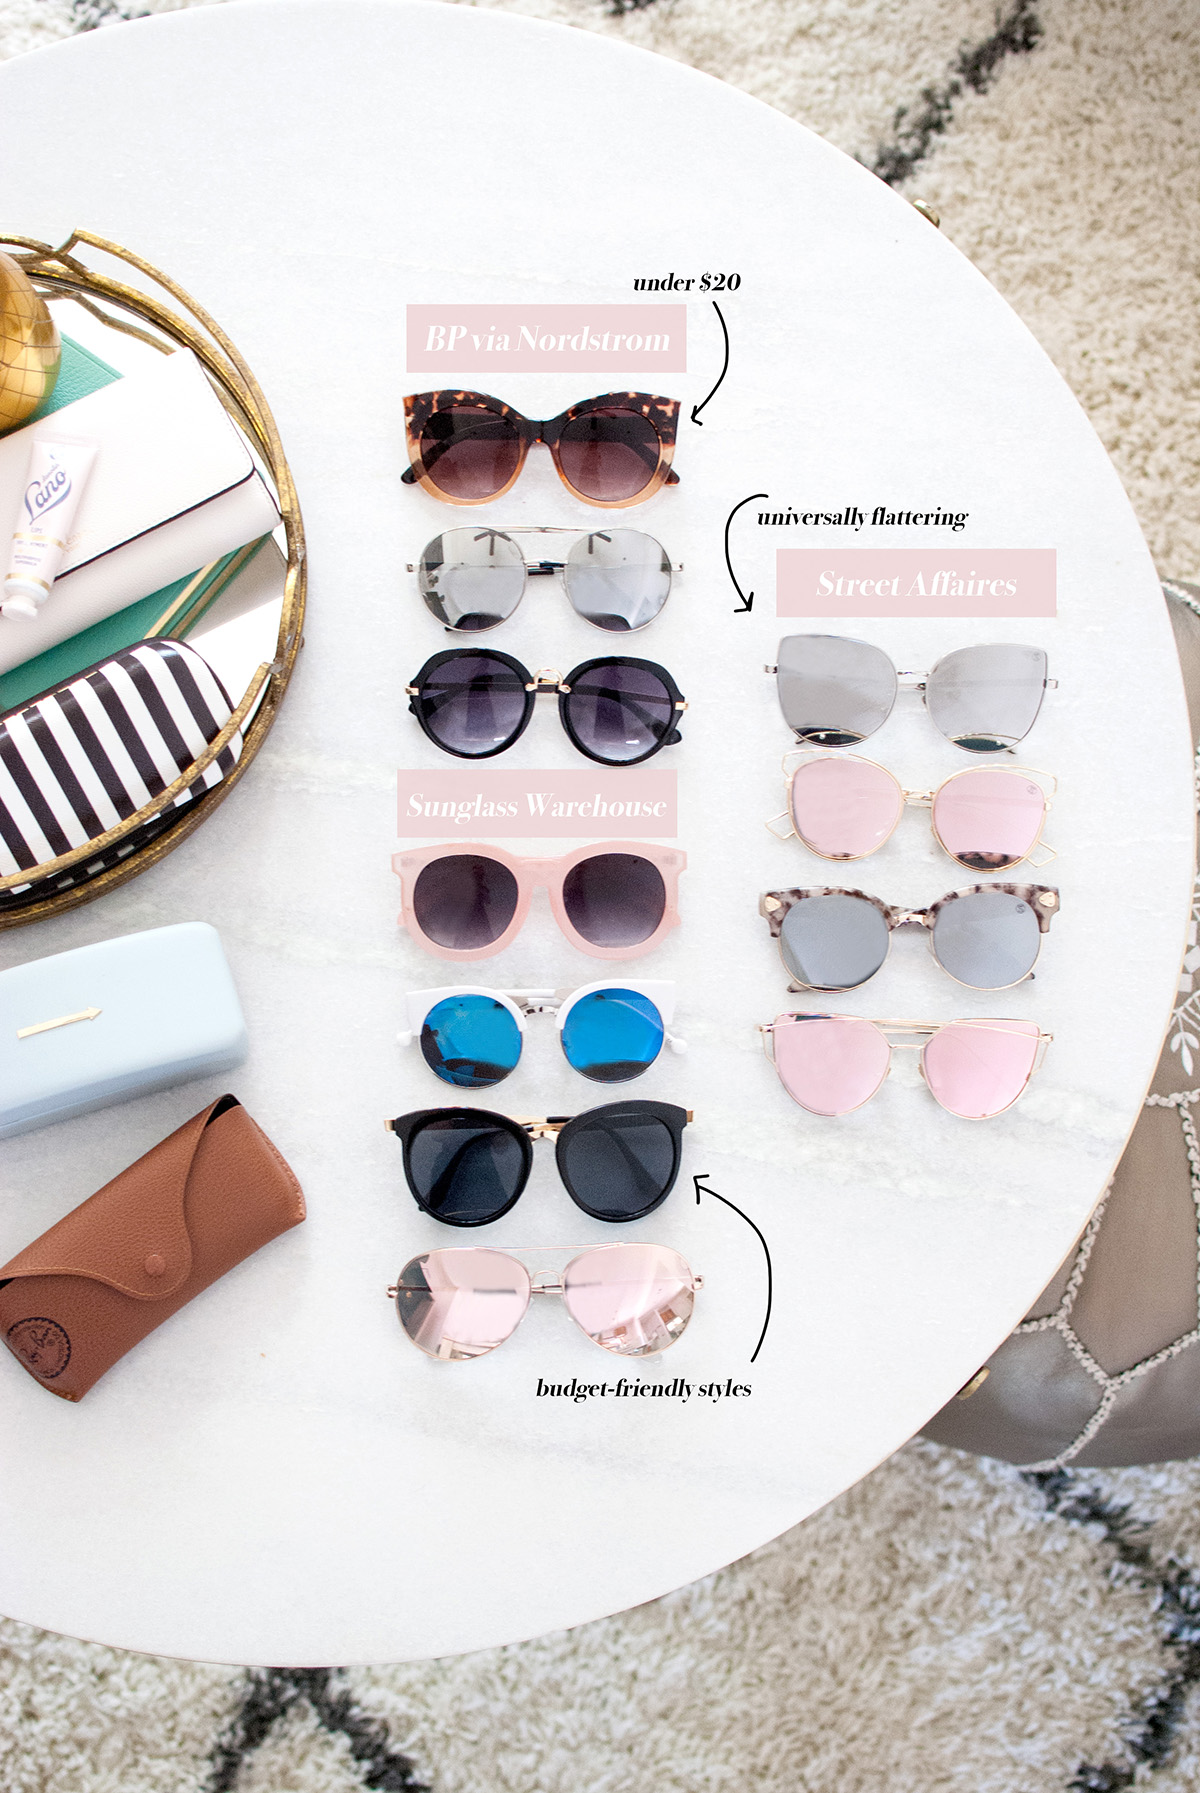 Best Sunglasses Brands for Every Budget | Sunglasses Under $20 + Sunglasses Styles That Are Always In Style